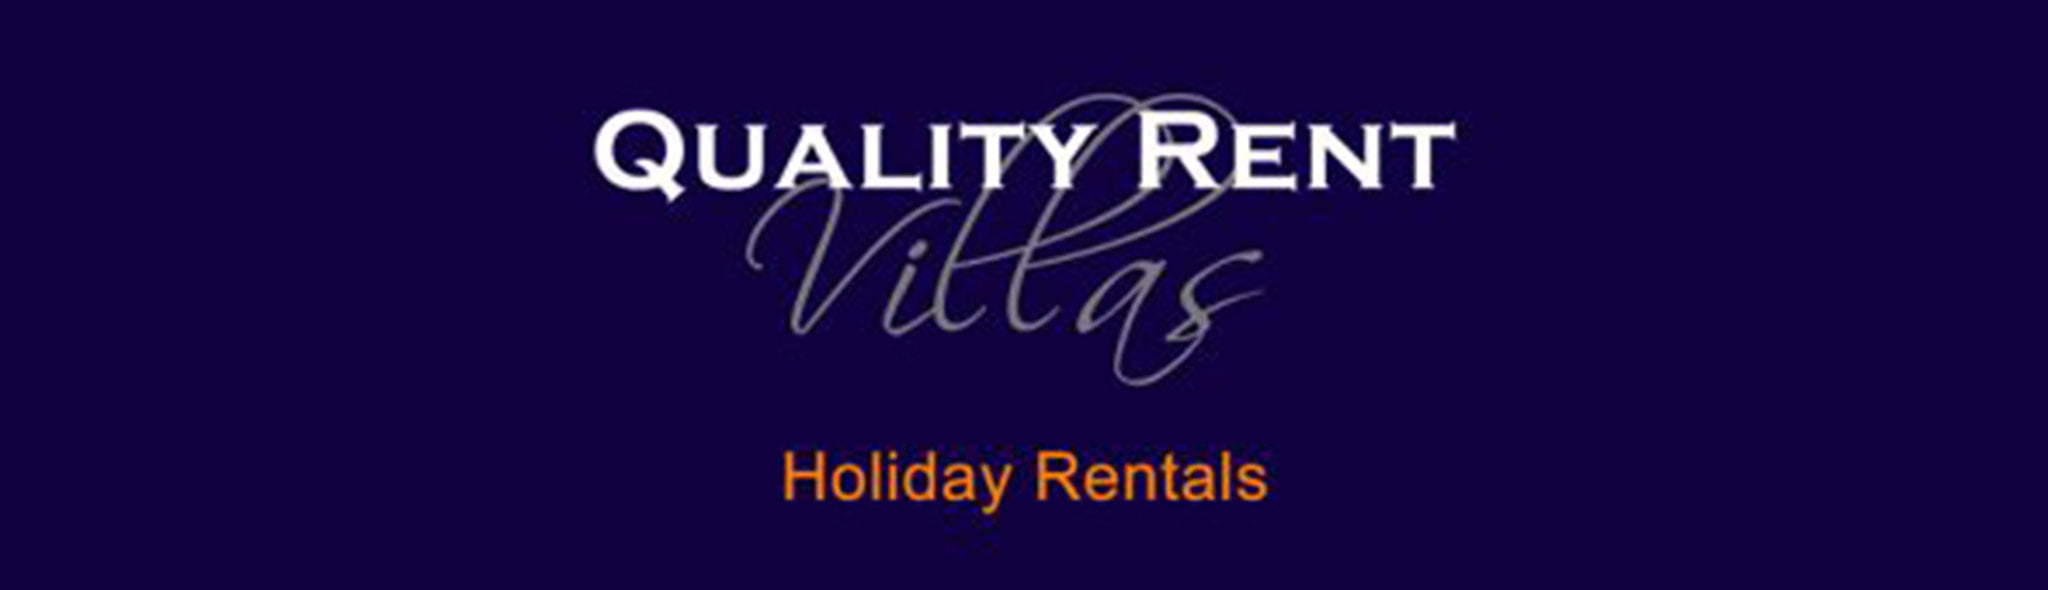 Logotipo de Quality Rent a Villa